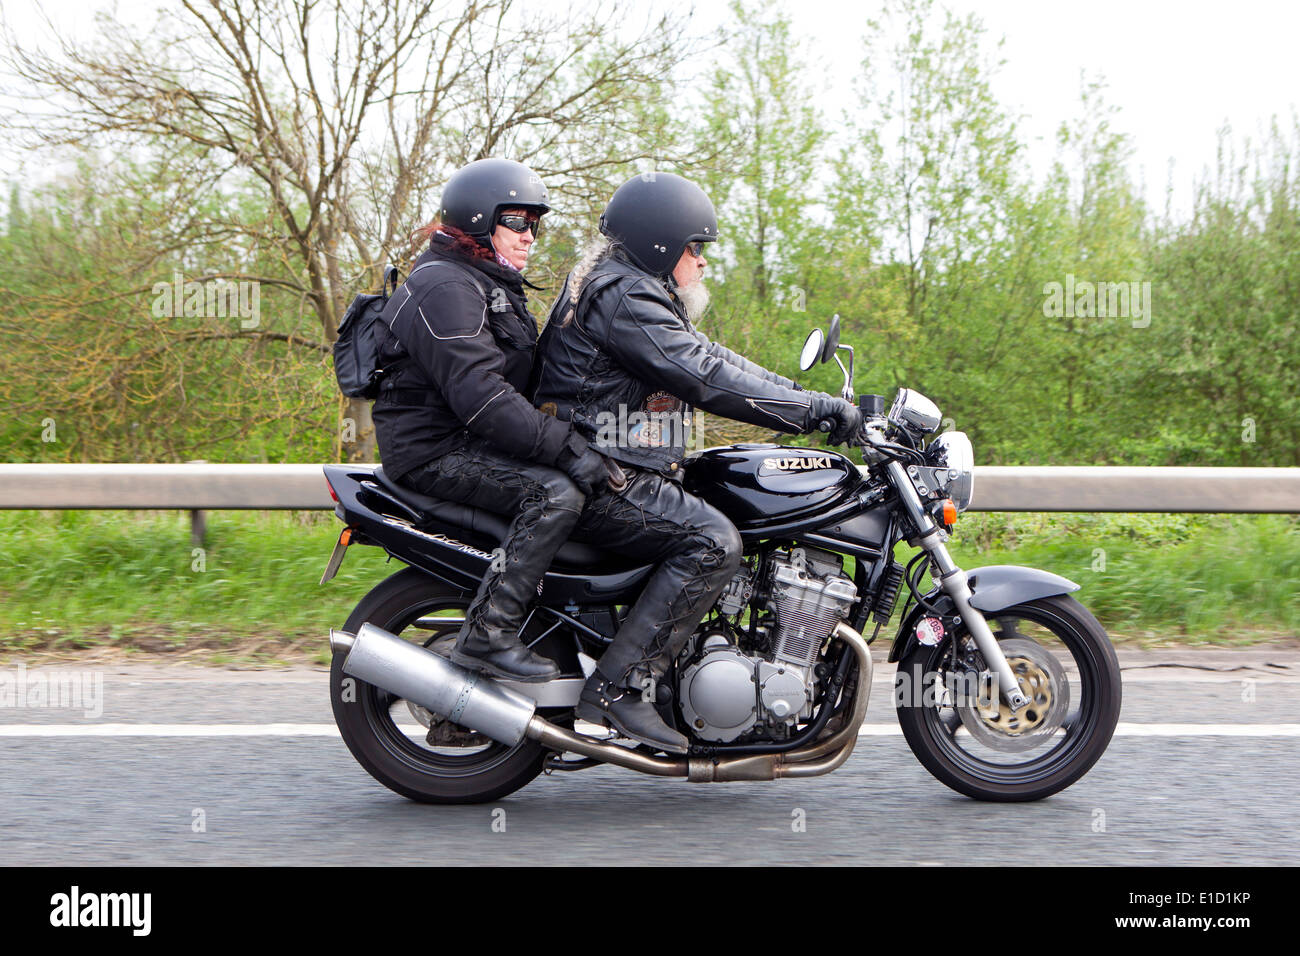 two aging bikers riding suzuki bandit n600 motorcycle stock photo royalty free image 69742842. Black Bedroom Furniture Sets. Home Design Ideas